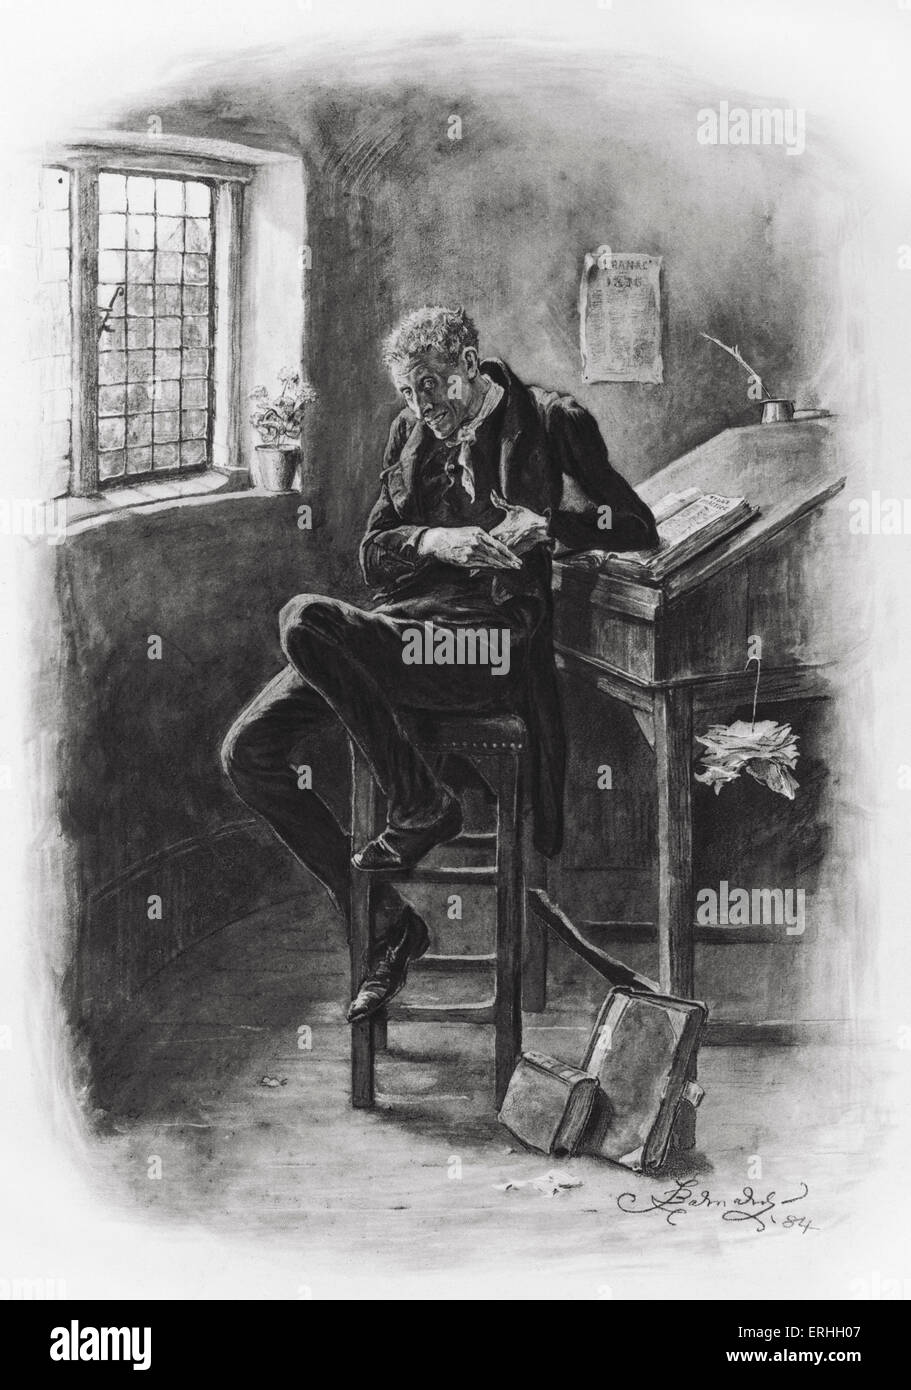 charles dickens s david copperfield portrait of uriah heep charles dickens s david copperfield portrait of uriah heep illustration by frederick barnard english illustrator